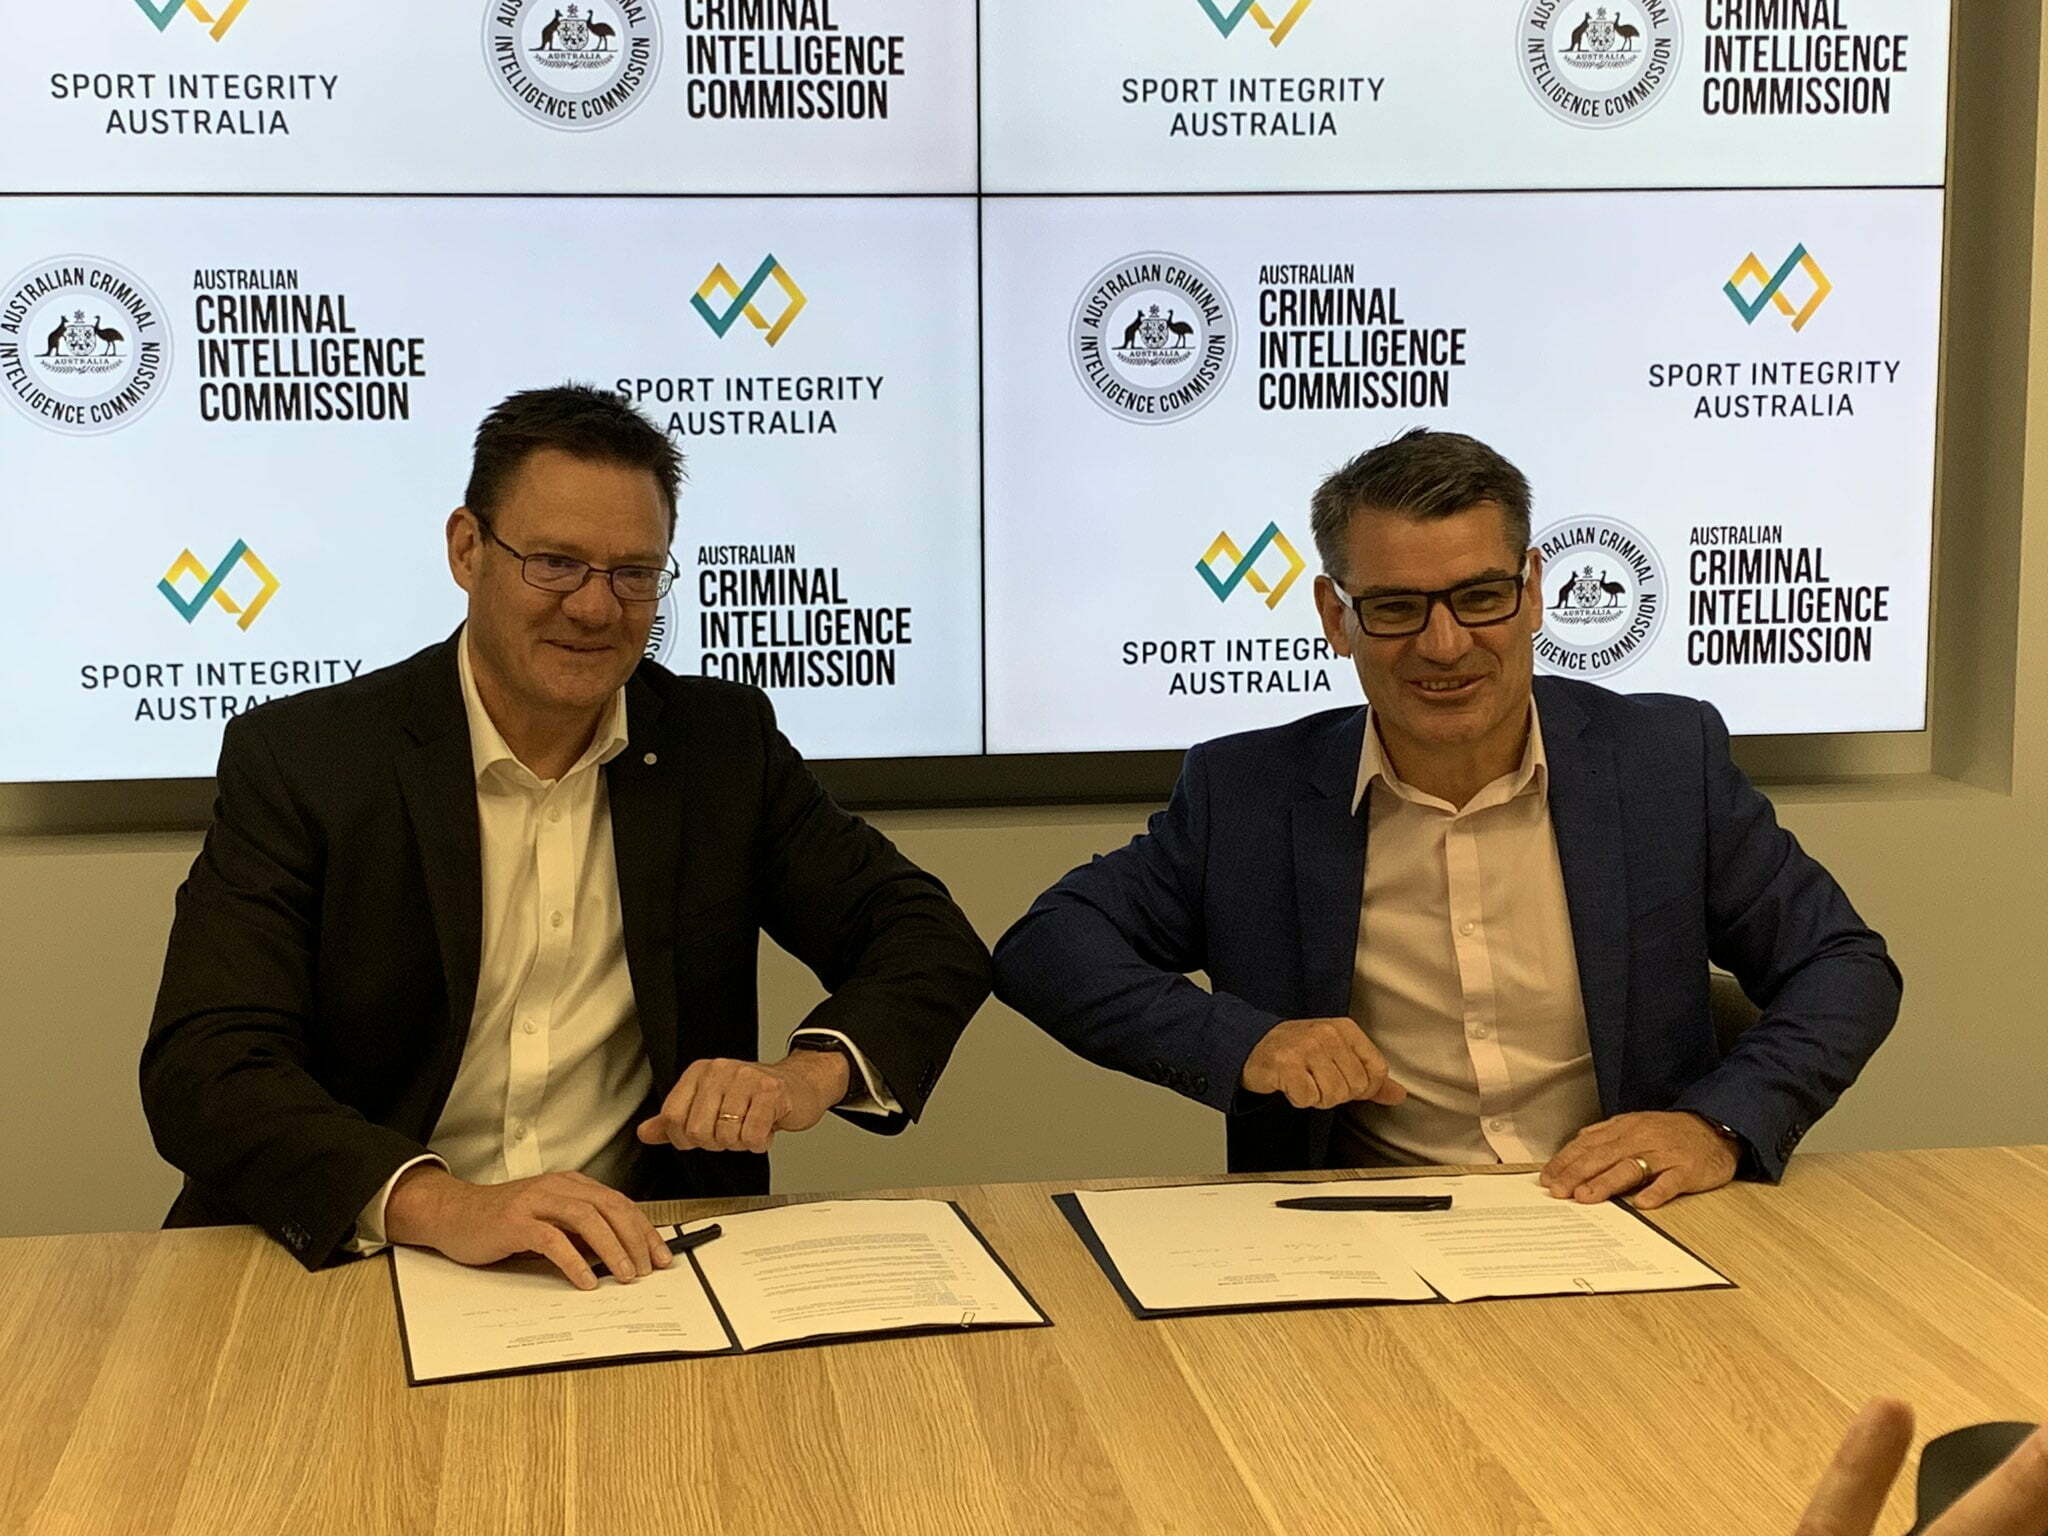 Sport Integrity Australia Partners With ACIC For Sports Integrity